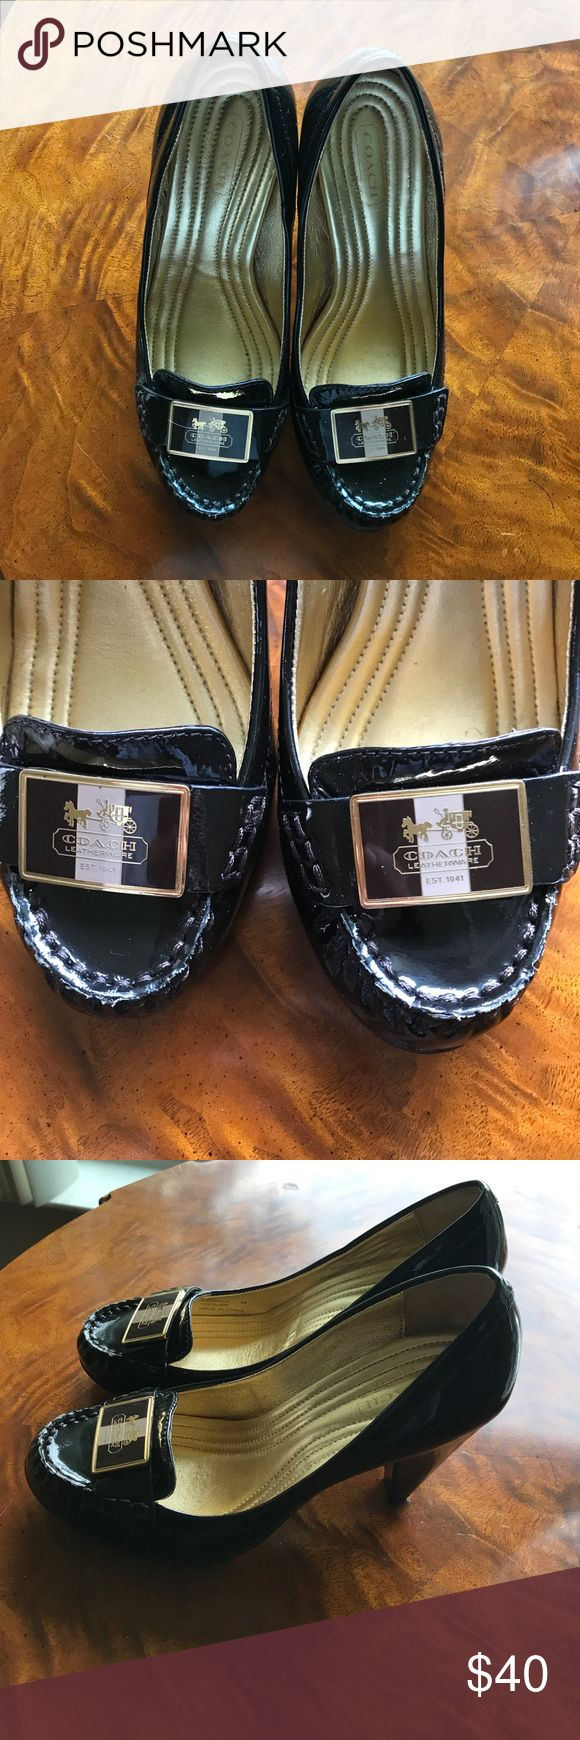 Coach high heel loafers brown patent leather Sz 6 Worn twice near perfect condition. ❌Final Price❌ Coach Shoes Heels